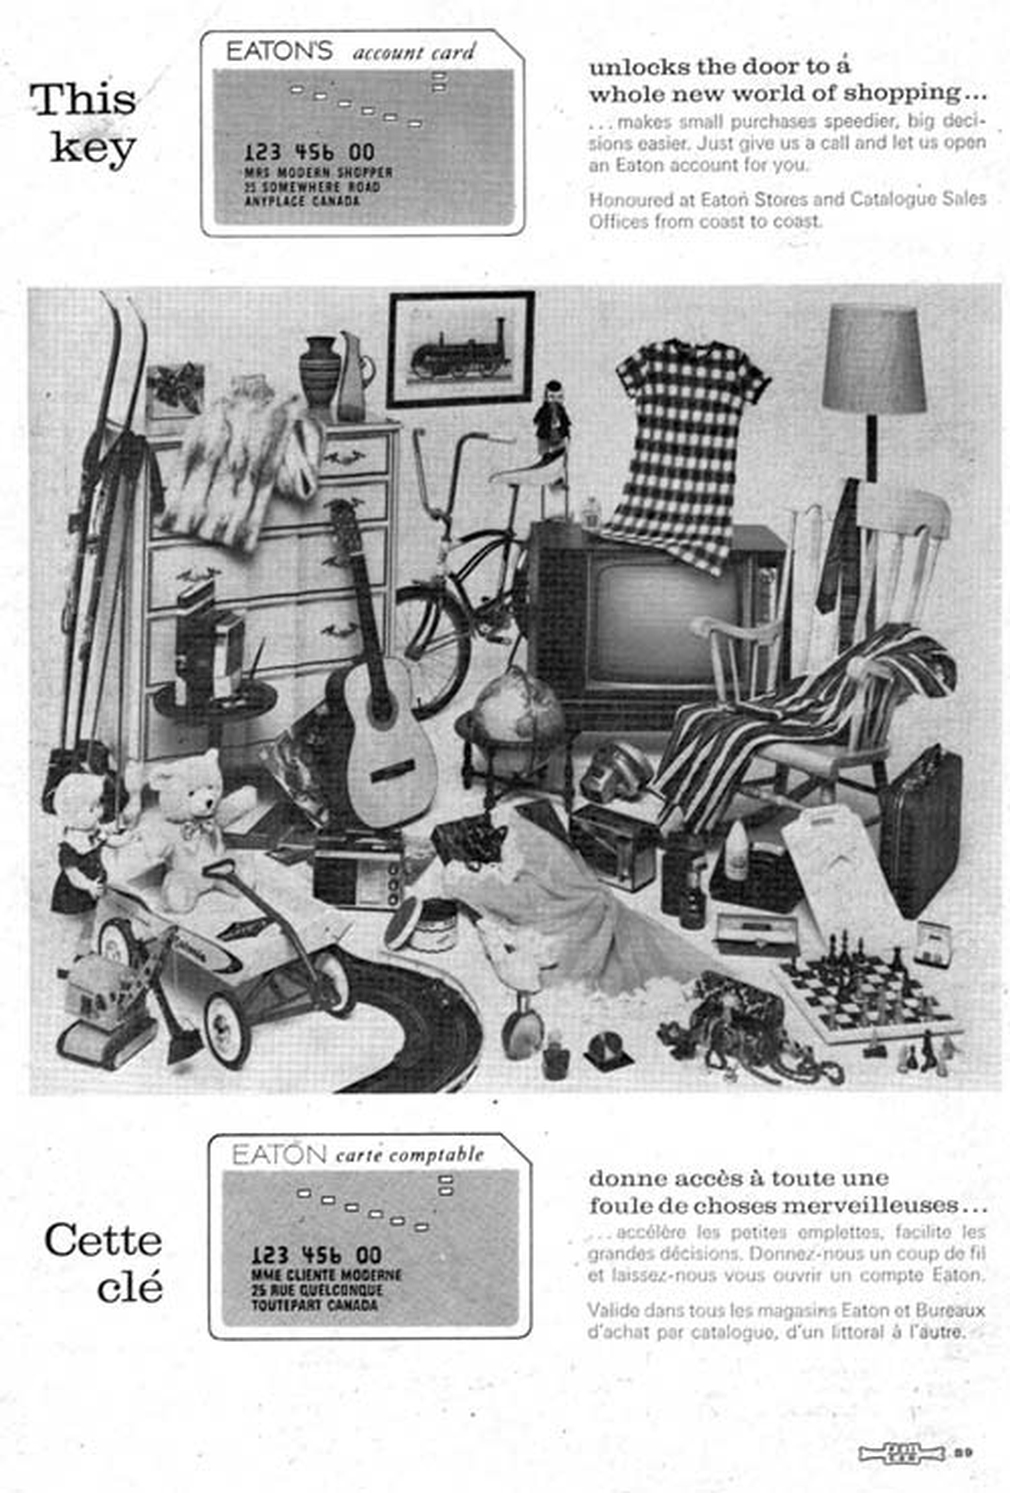 Eaton's account card vintage ad 1968